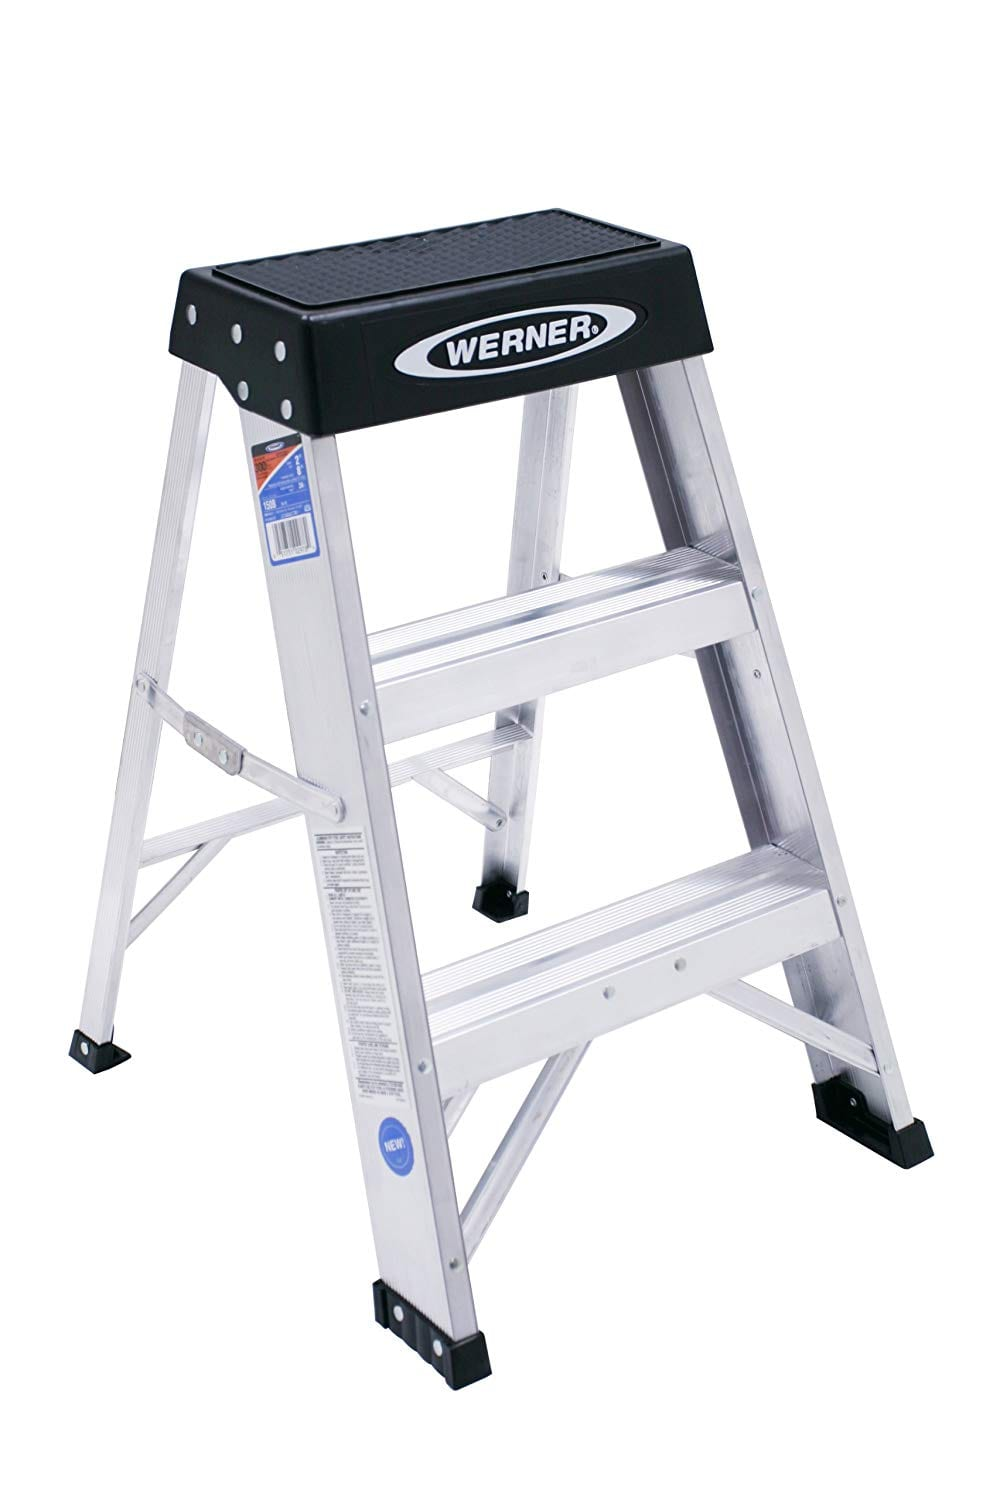 Werner 150B Duty Rating Aluminum Step Ladder